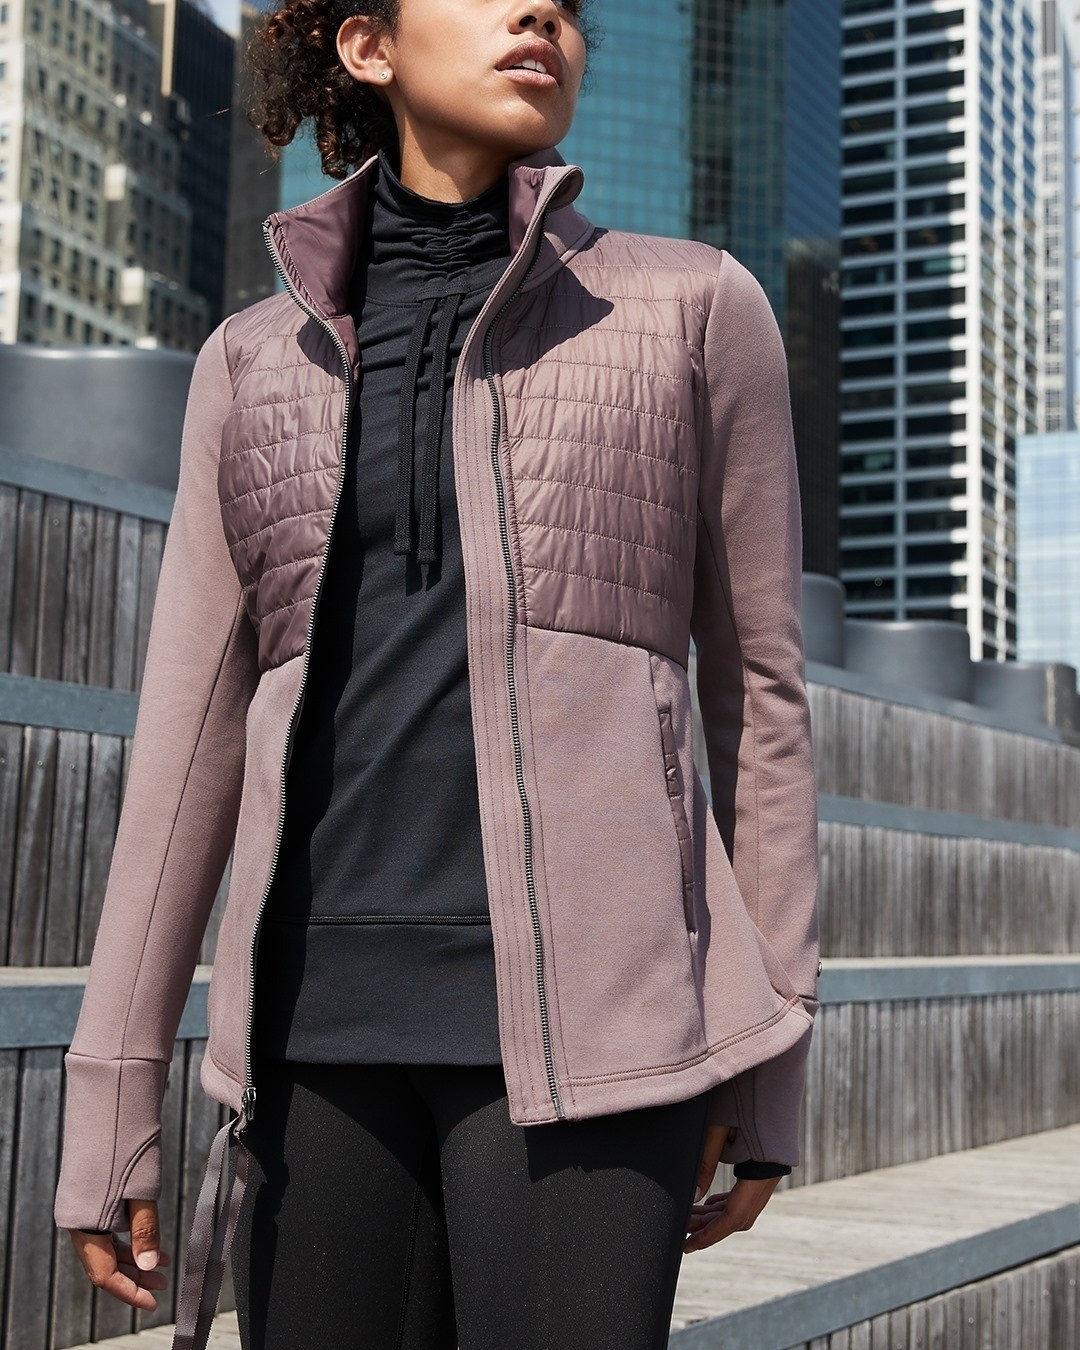 model wearing the zip-up jacket with quilted portion on the top half, and zipper on either side